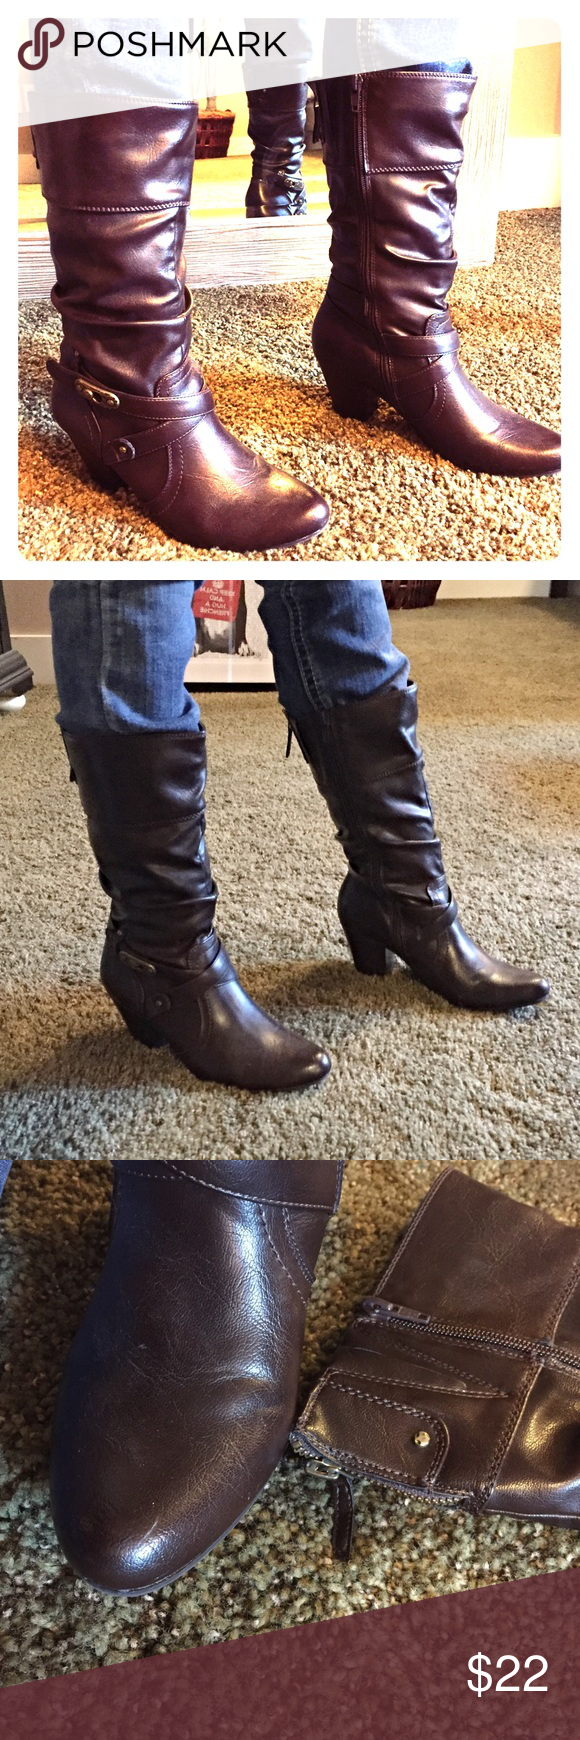 Adorable Dark Brown Boots I got a lot of compliments on these. I just have too many boots. These are the perfect height to not have too much arch but still look sexy. Back has expander to fit a wider range, one small unnoticeable scuff on toe, otherwise great used condition. Shoes Heeled Boots